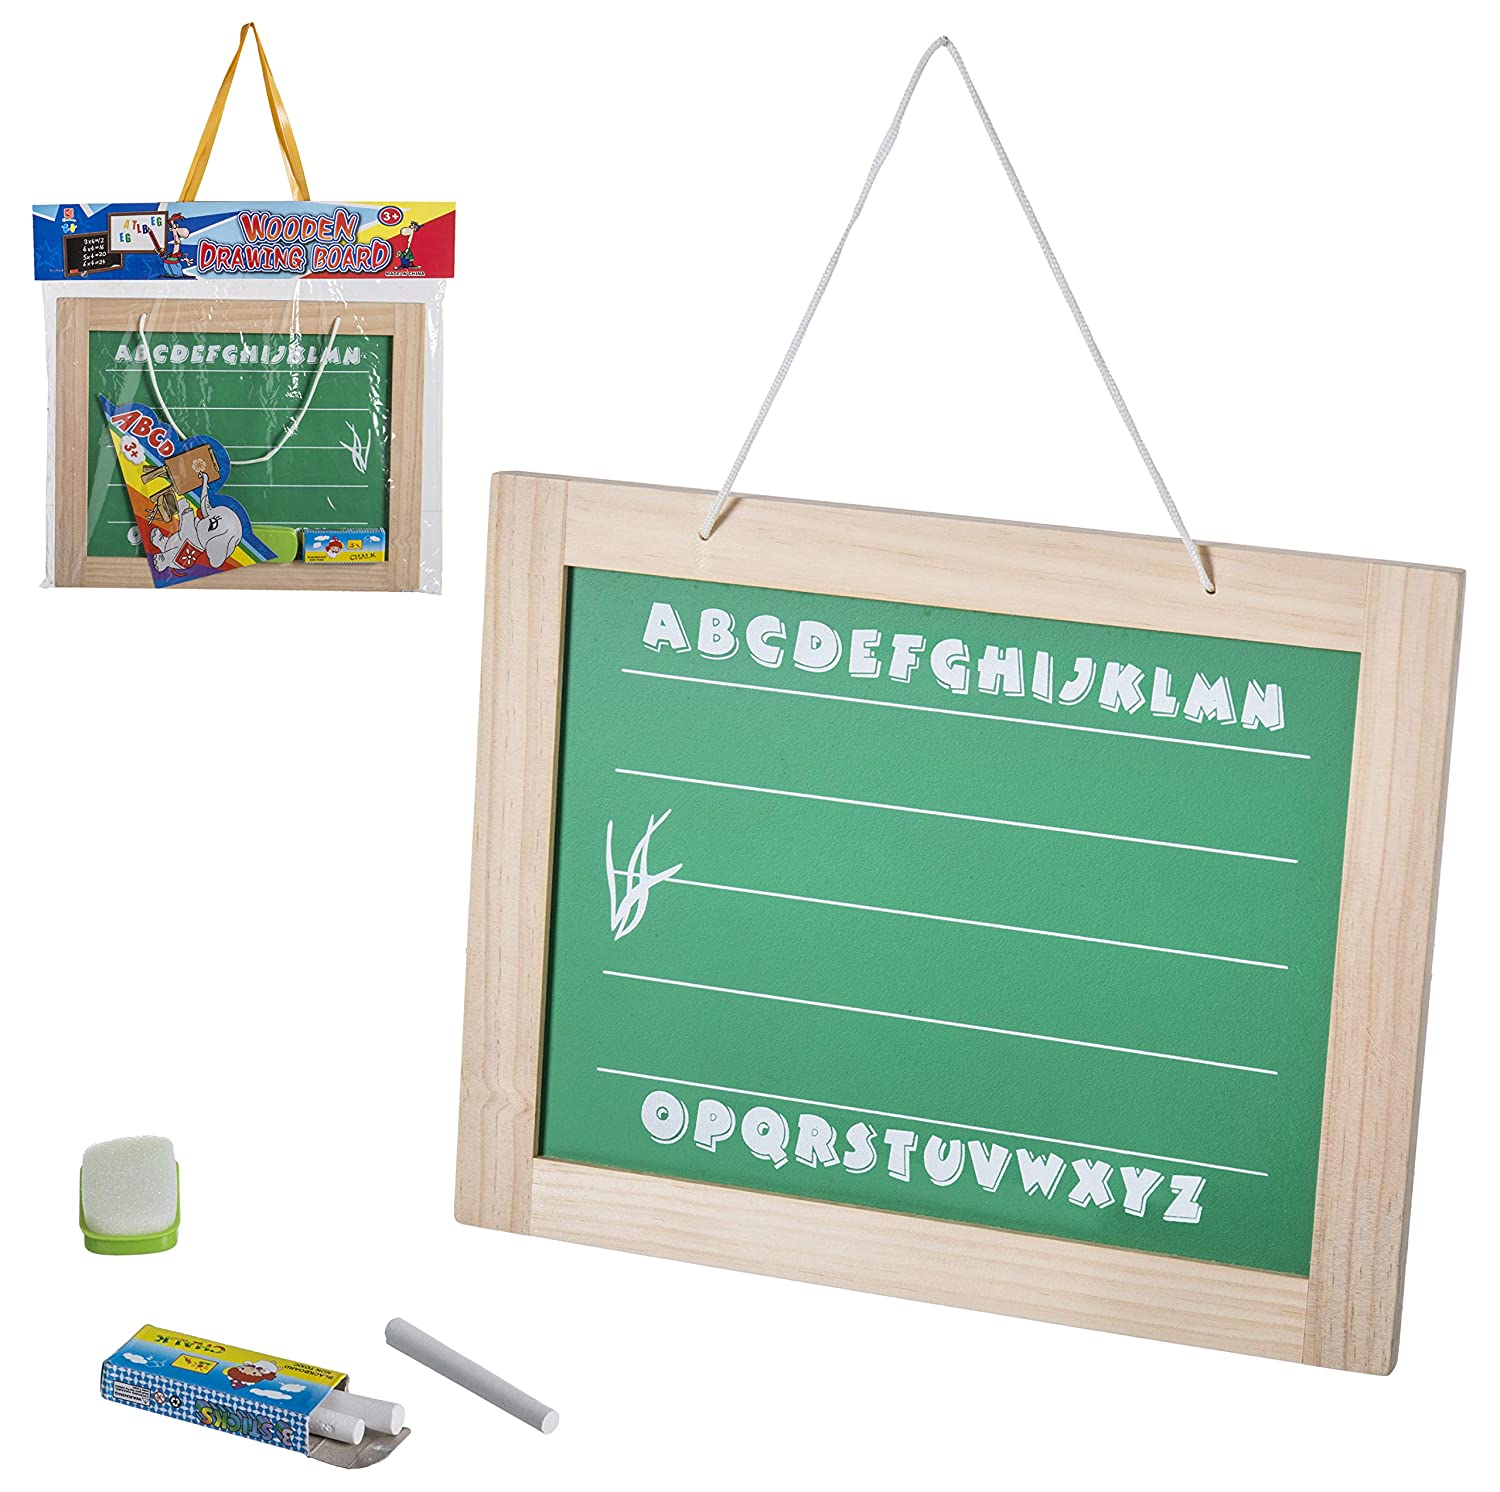 96845 Juinsa-96845 Chalkboard Wall Board with Chalk and Eraser